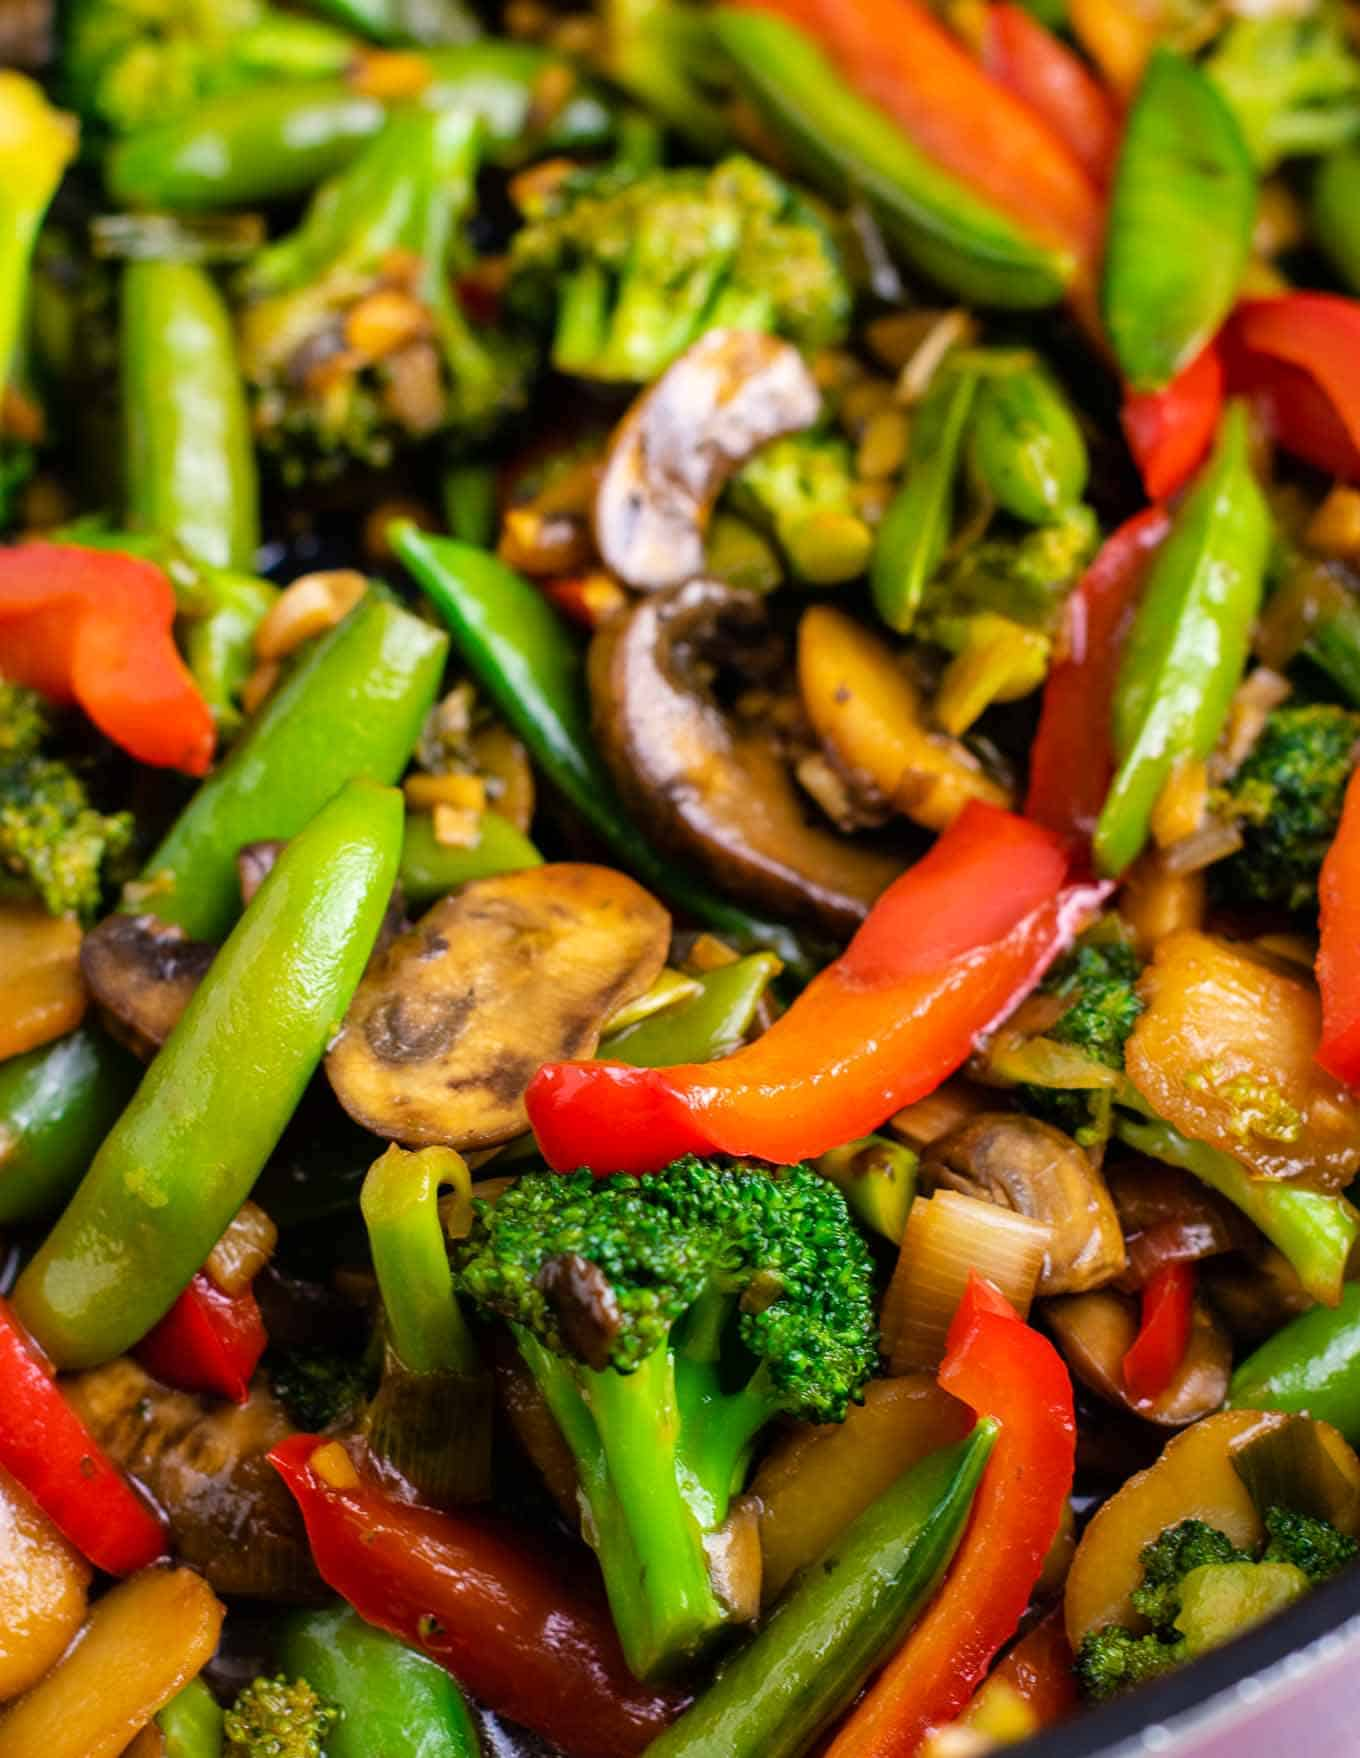 Stir fry vegetables recipe – with homemade stir fry sauce.